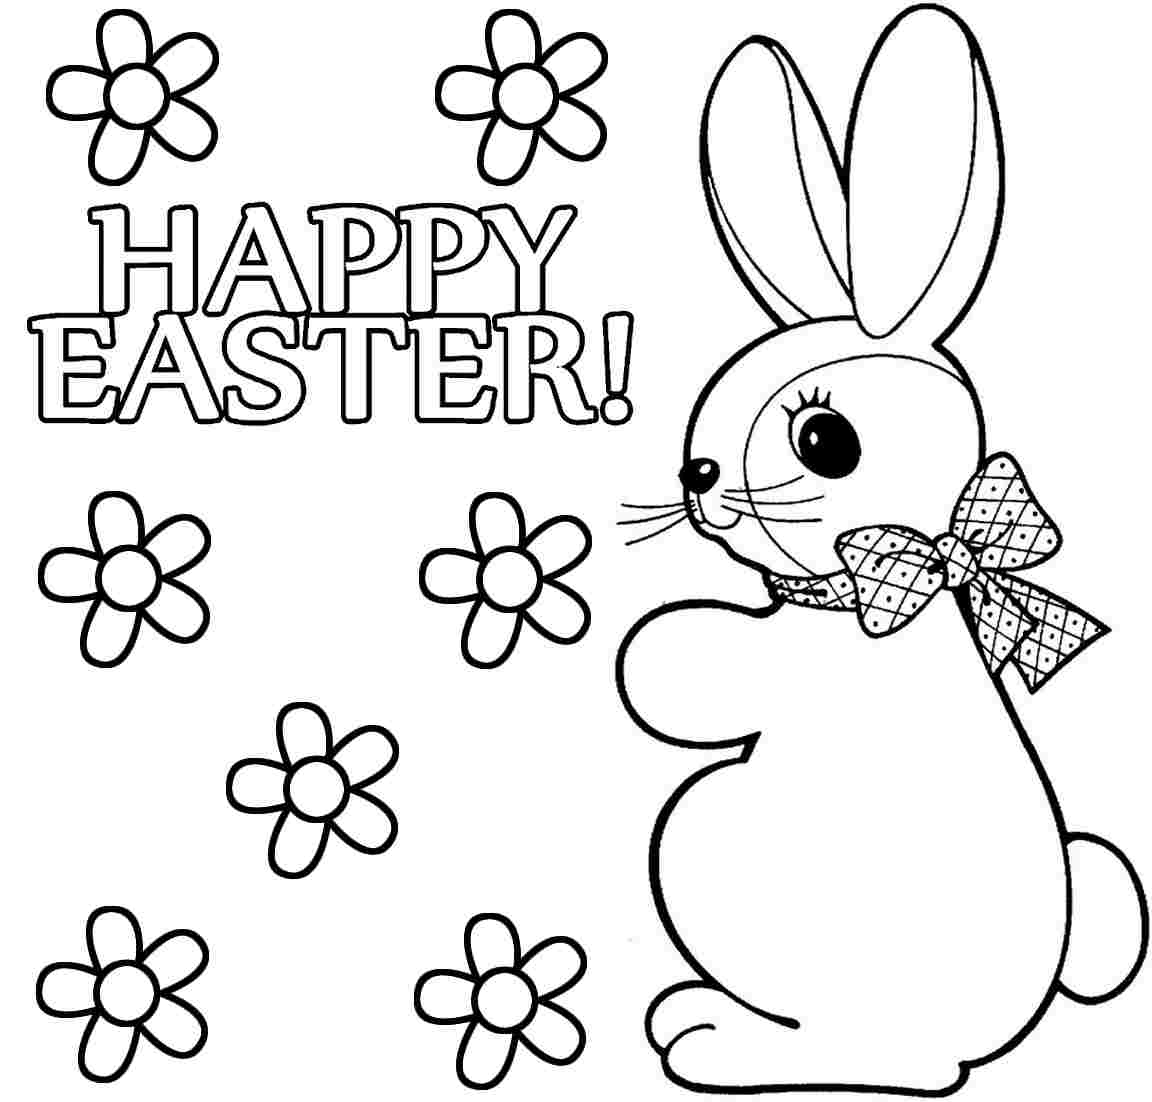 easter bunny coloring pictures easter bunny coloring pages to print to download and print pictures easter coloring bunny